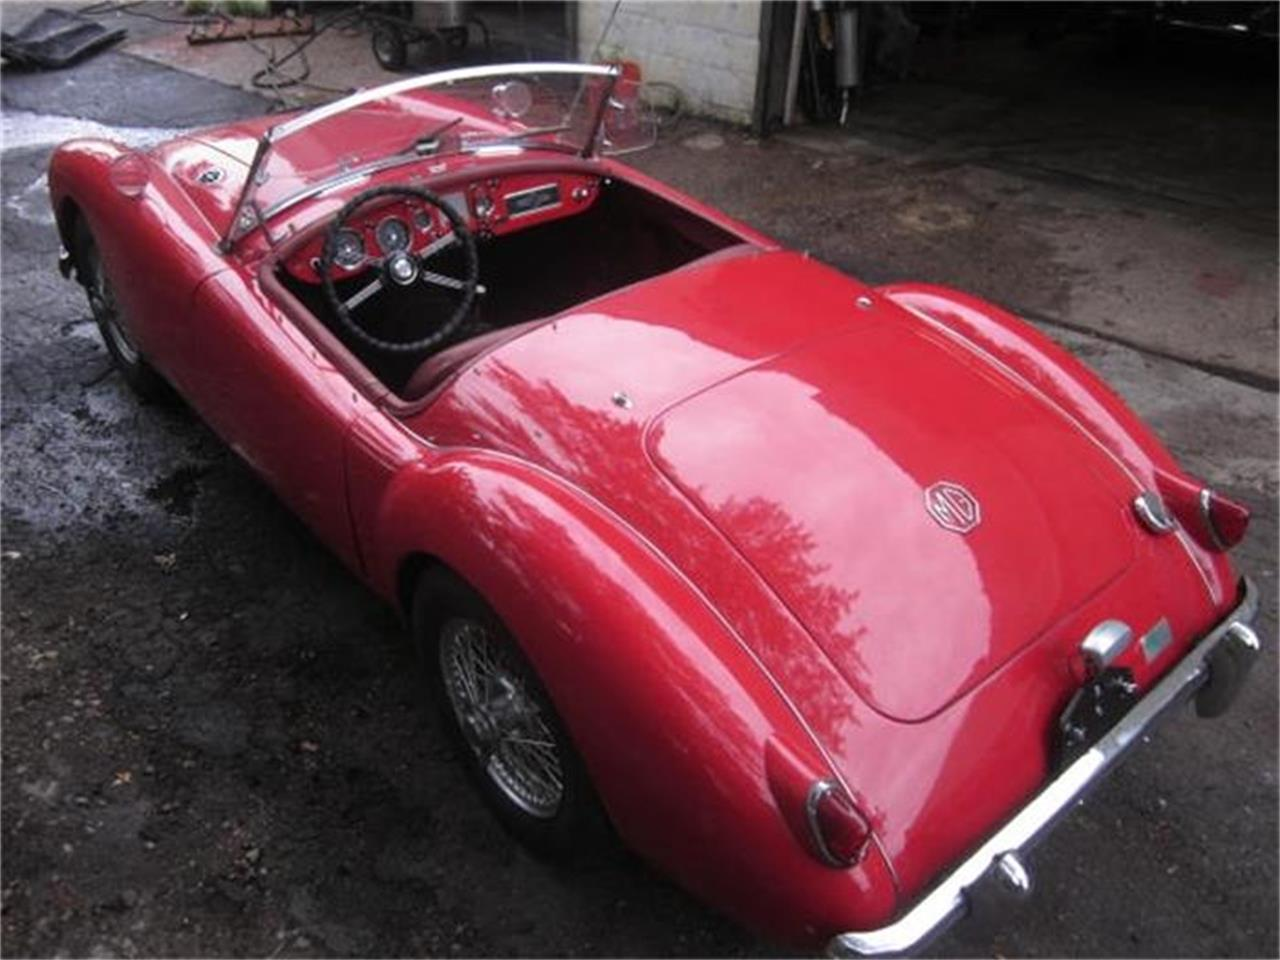 Large Picture of Classic 1959 MG MGA 1500 - $24,000.00 - EYVI